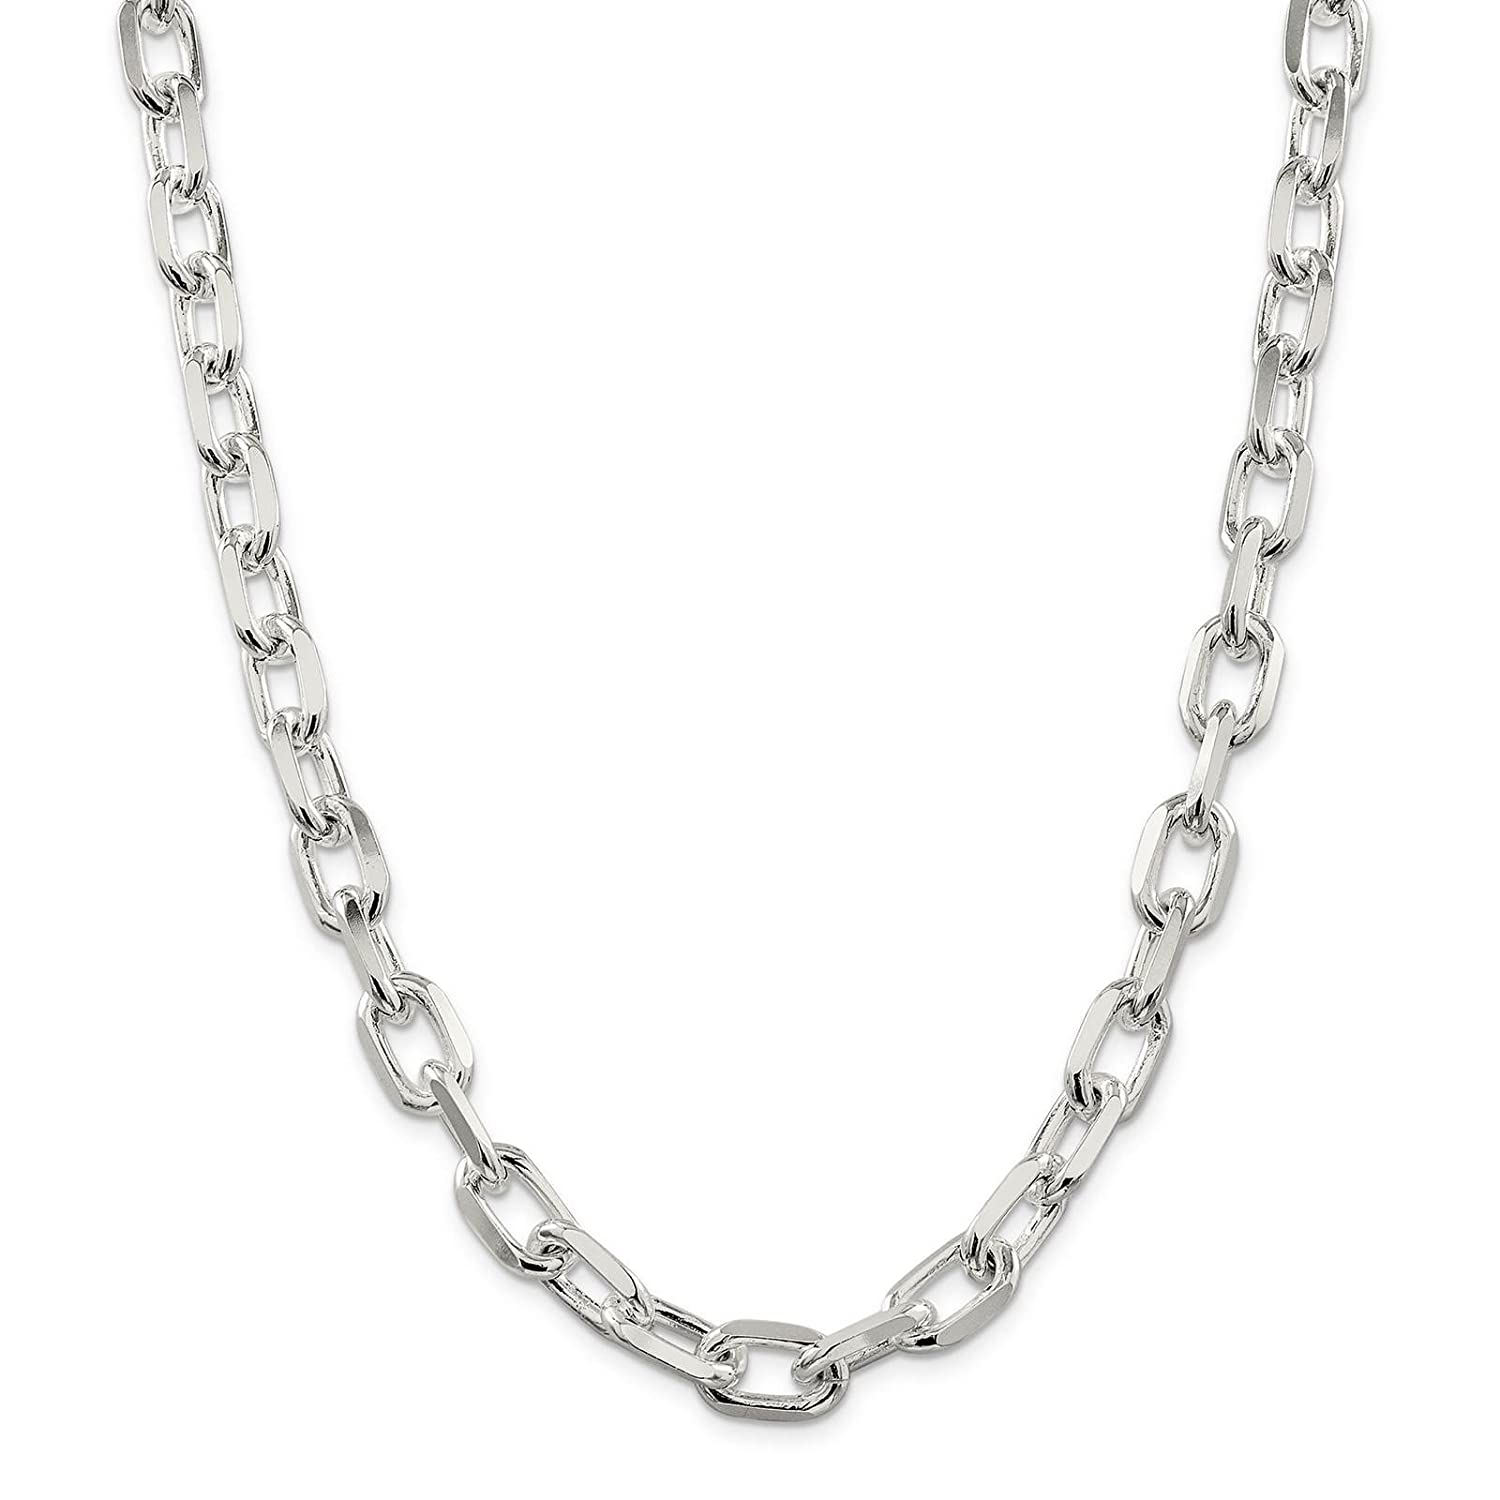 925 Sterling Silver 11.5mm Diamond-Cut Open Link Cable Chain Necklace 7-24